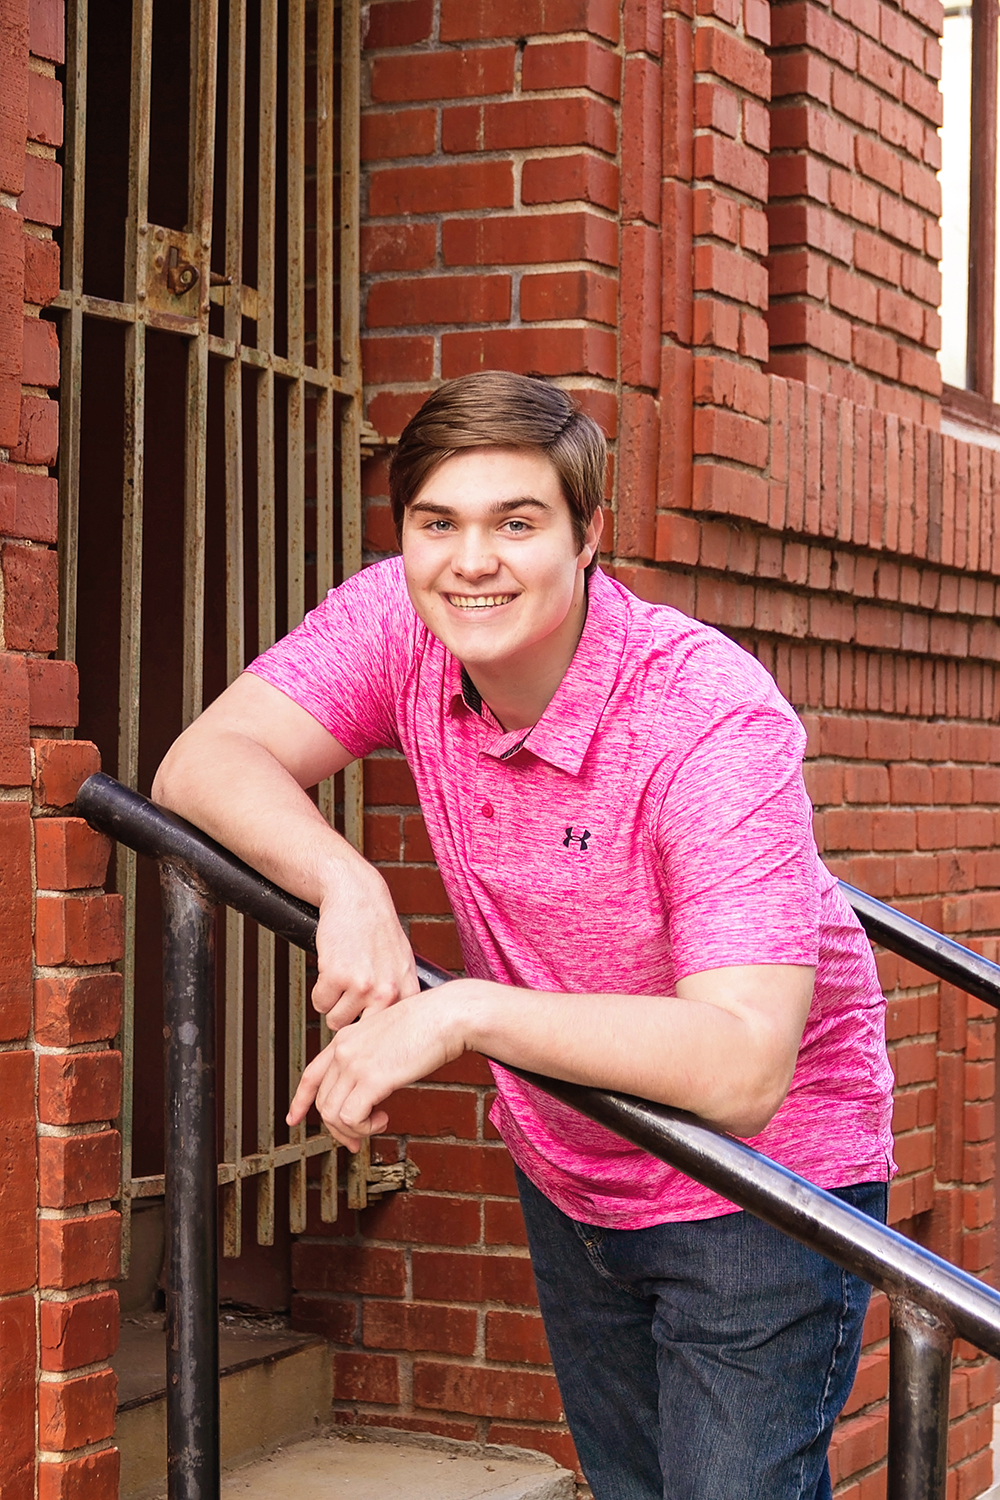 guy in pink shirt on stairs.jpg